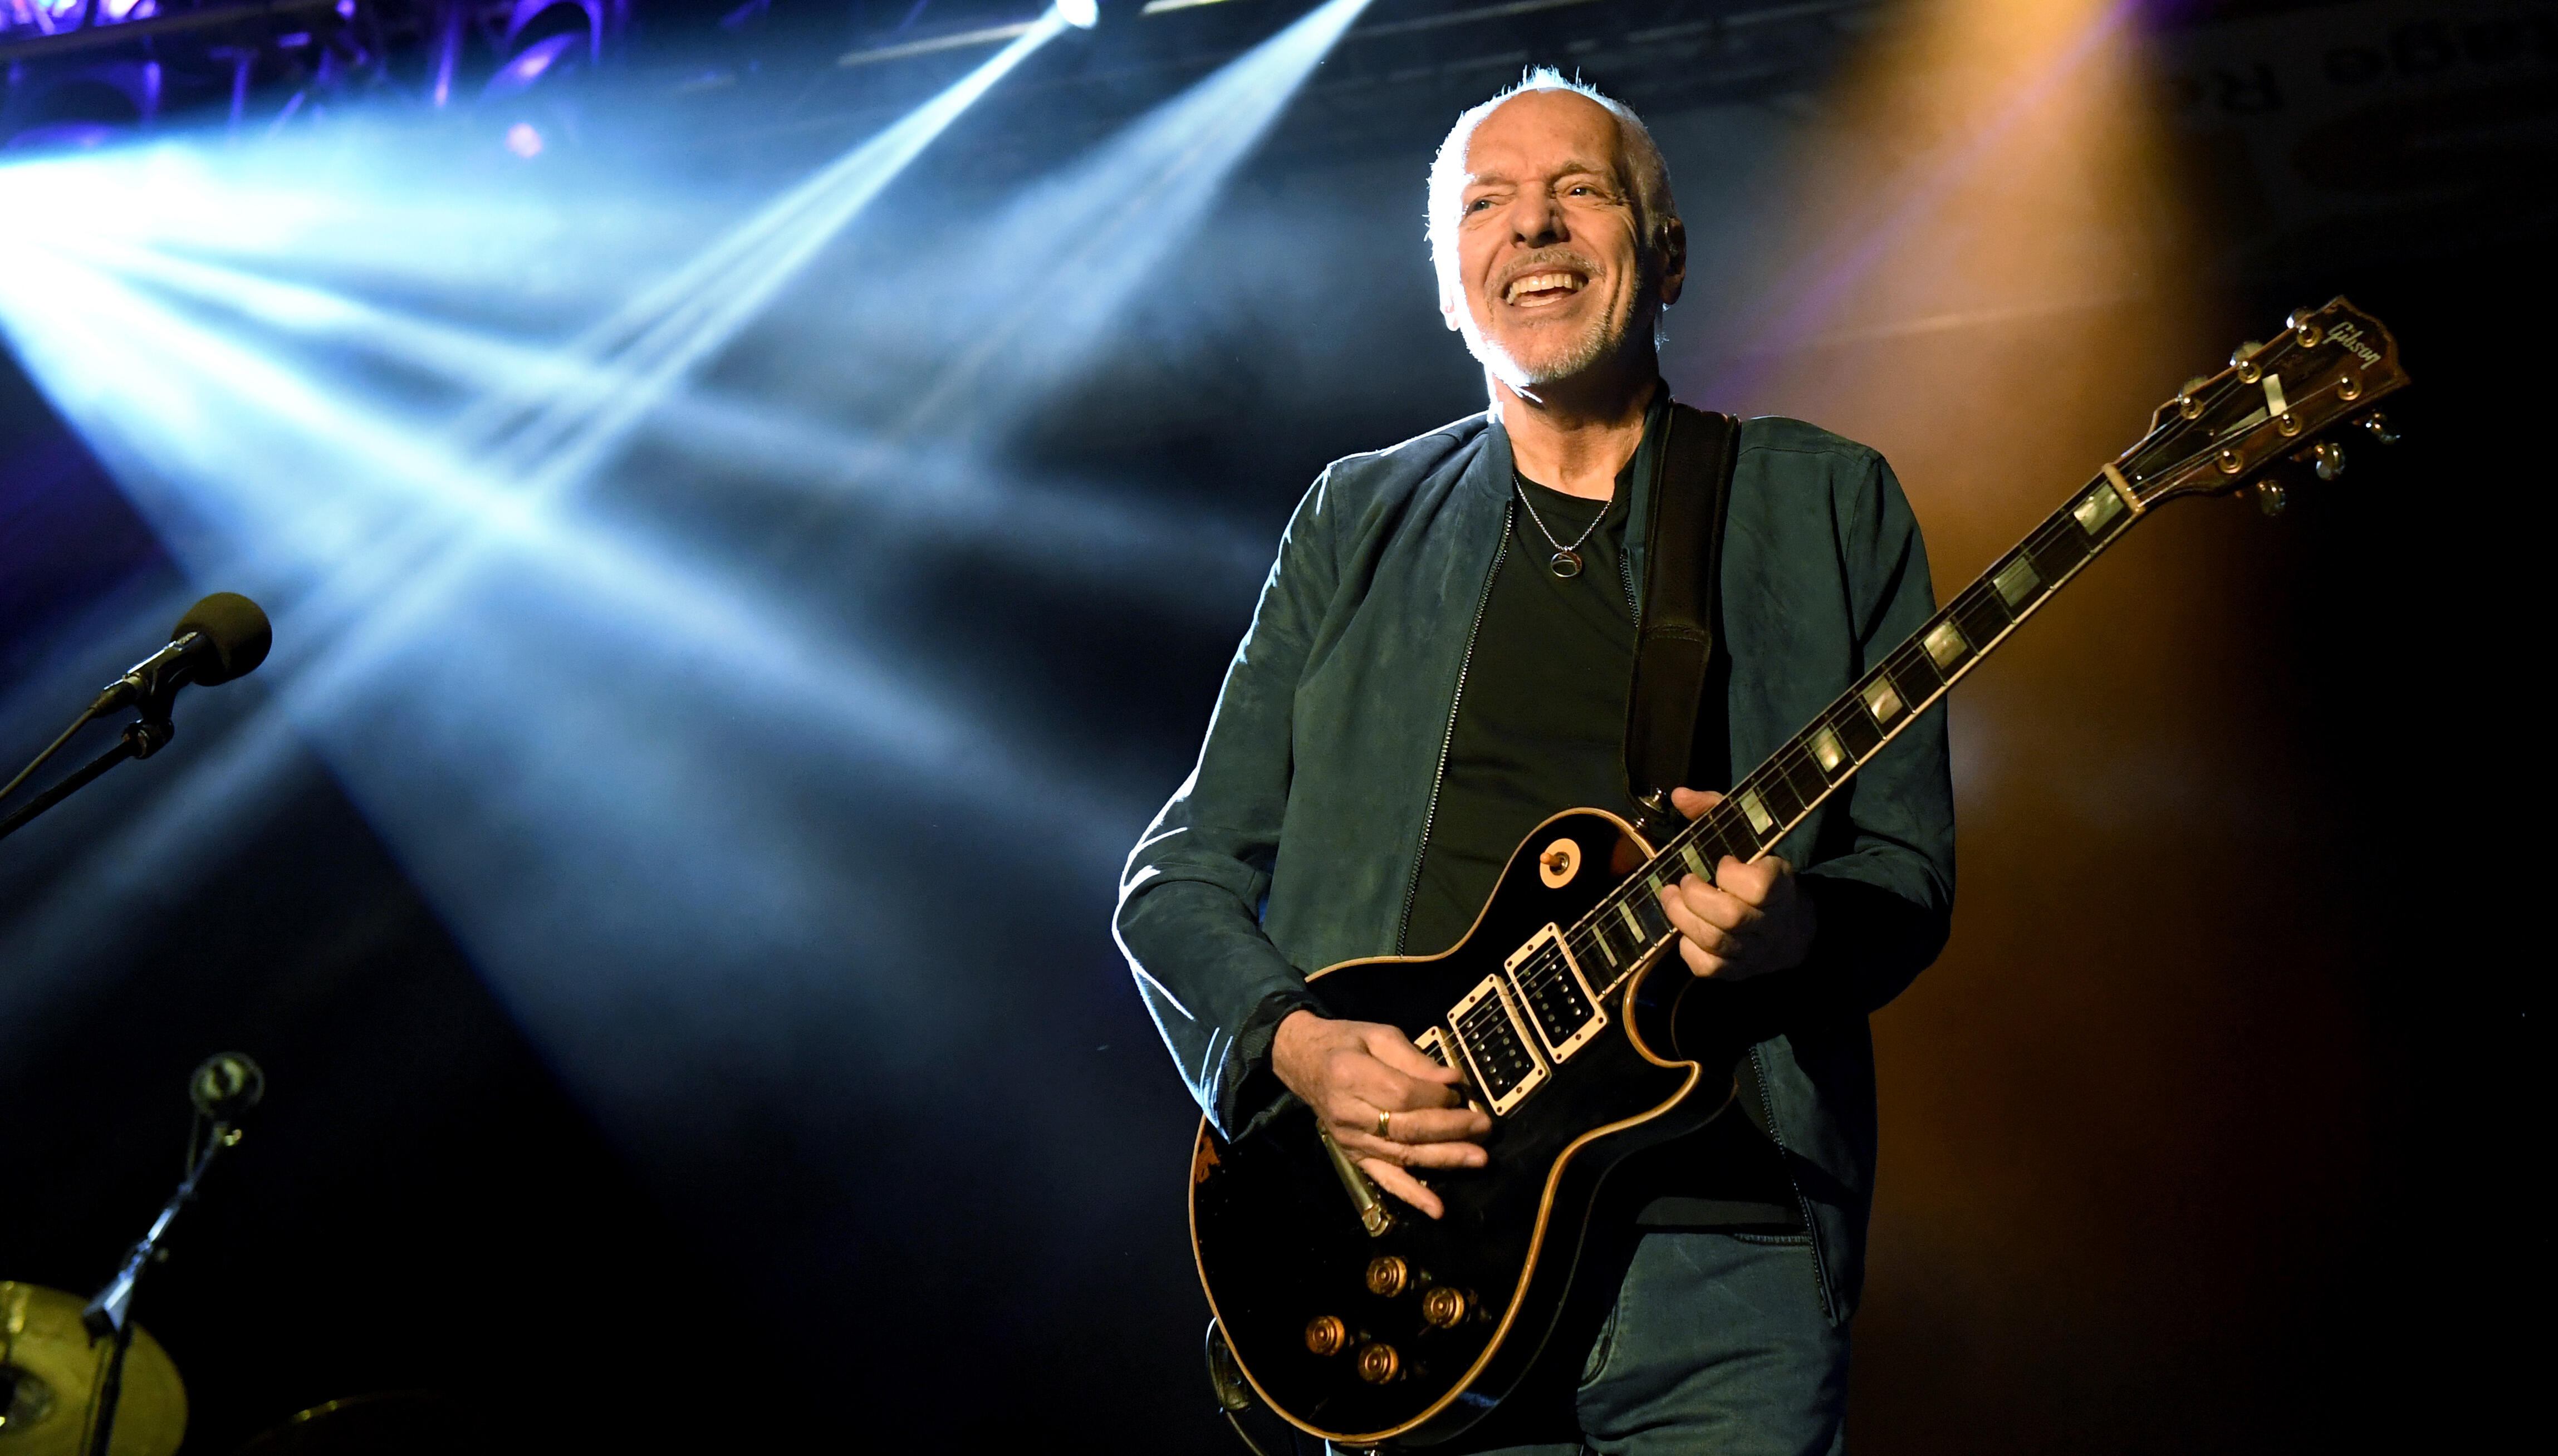 Check Out Peter Frampton's New 'Frampton Stays Inside!' Pandemic Merch